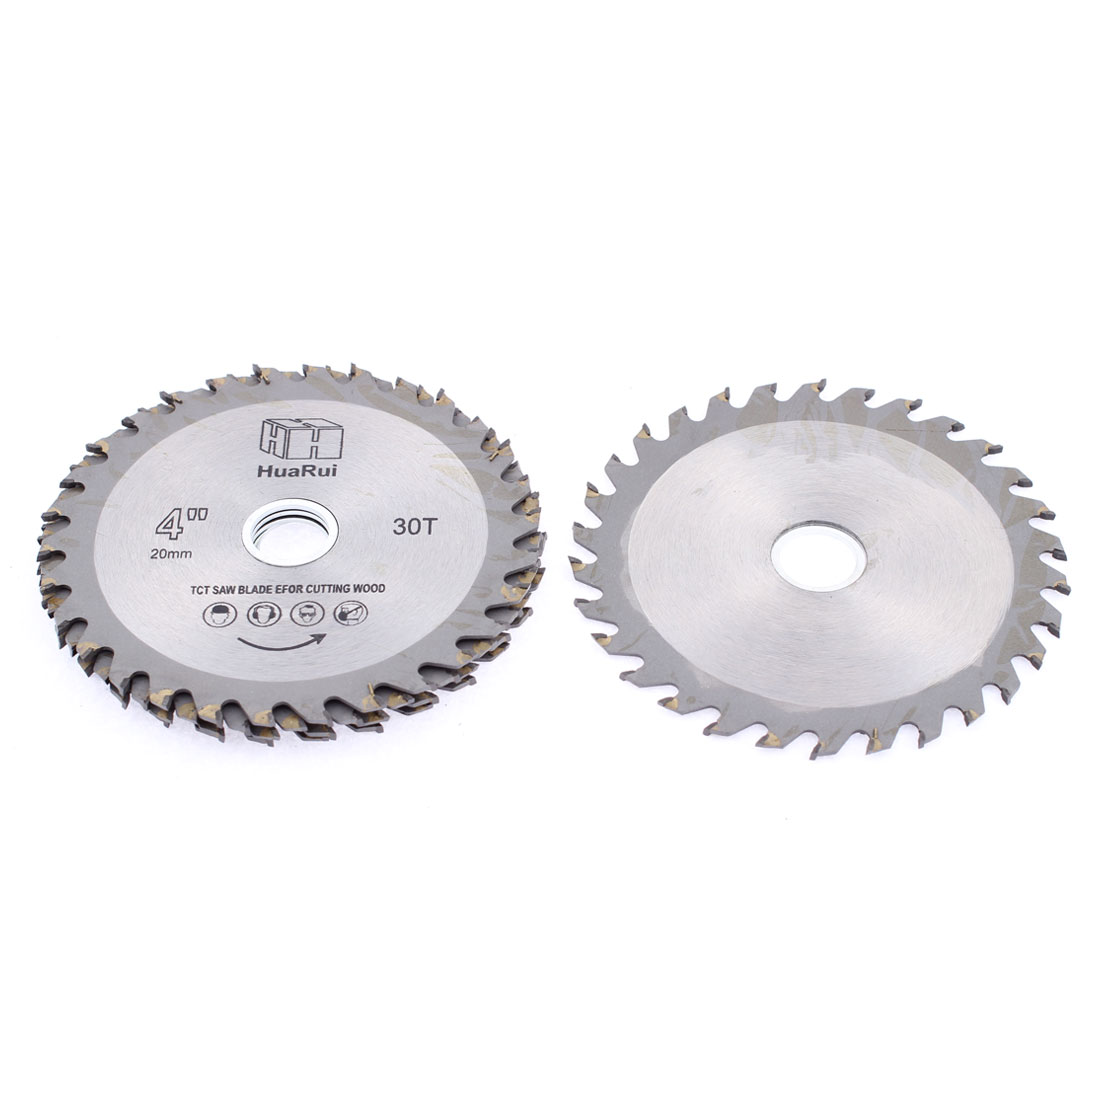 5 Pcs 110mmx20mmx1mm 30 Teeth Circular Cutting Saw Cutter Hand Tool